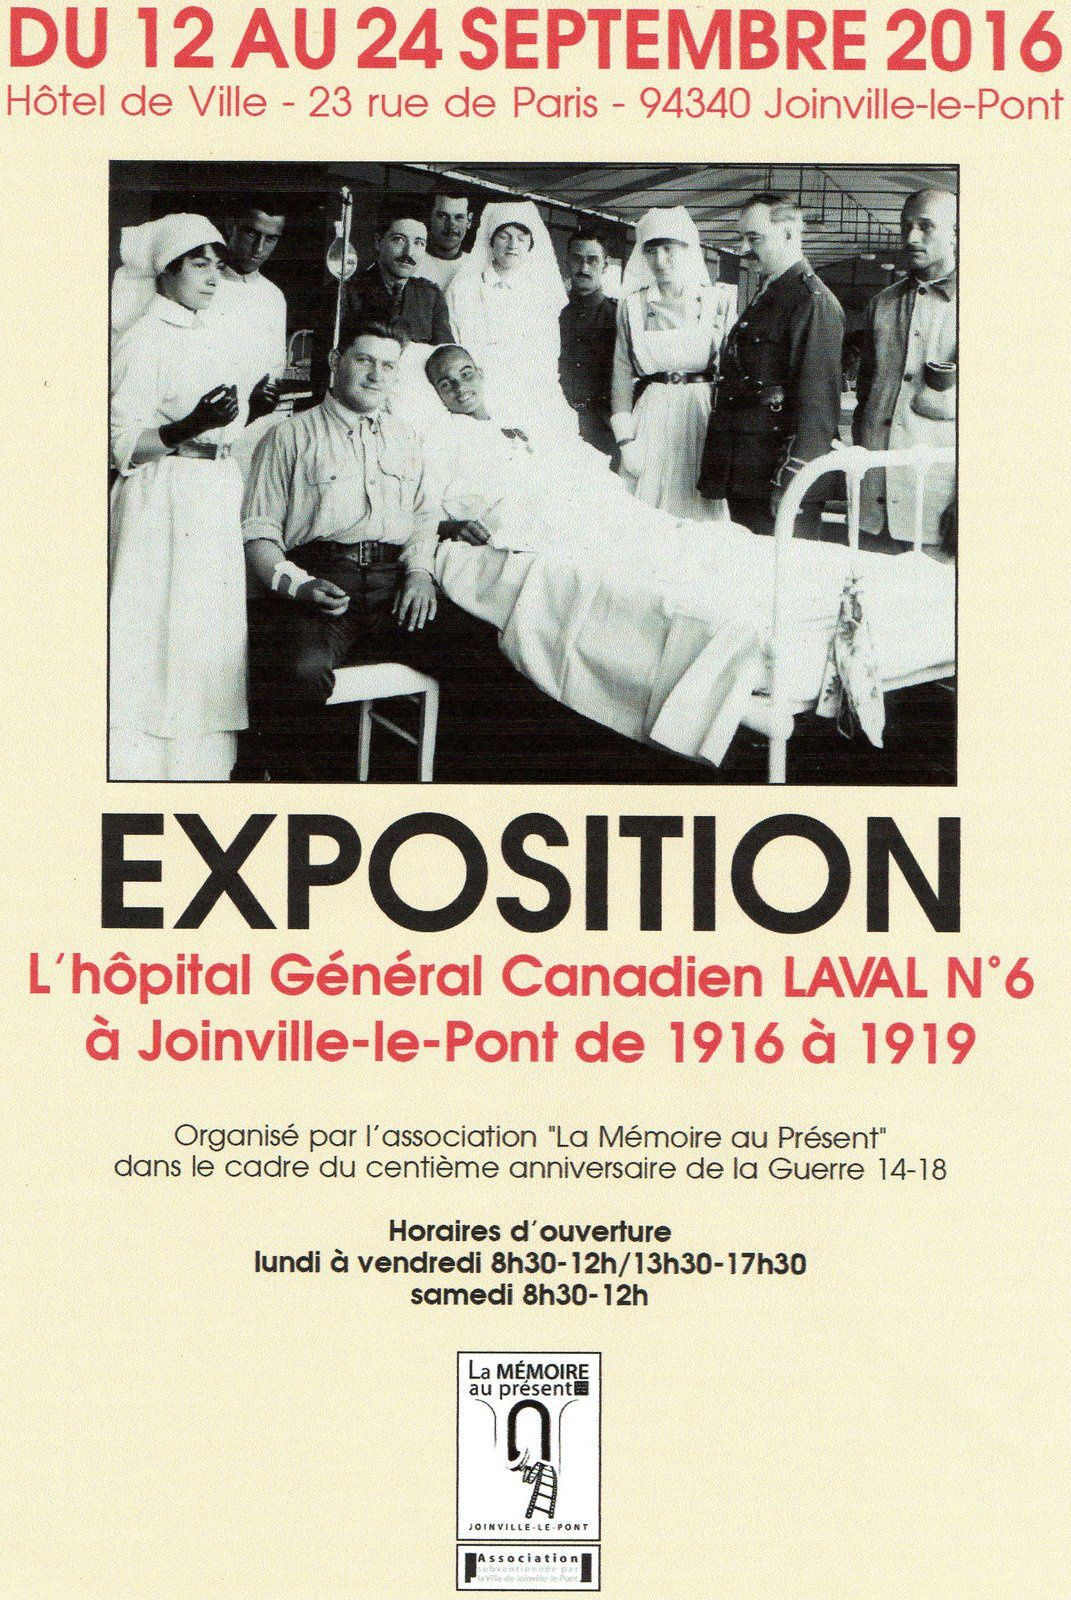 cérémonie, expositions , village des associations à Joinville-le-Pont.